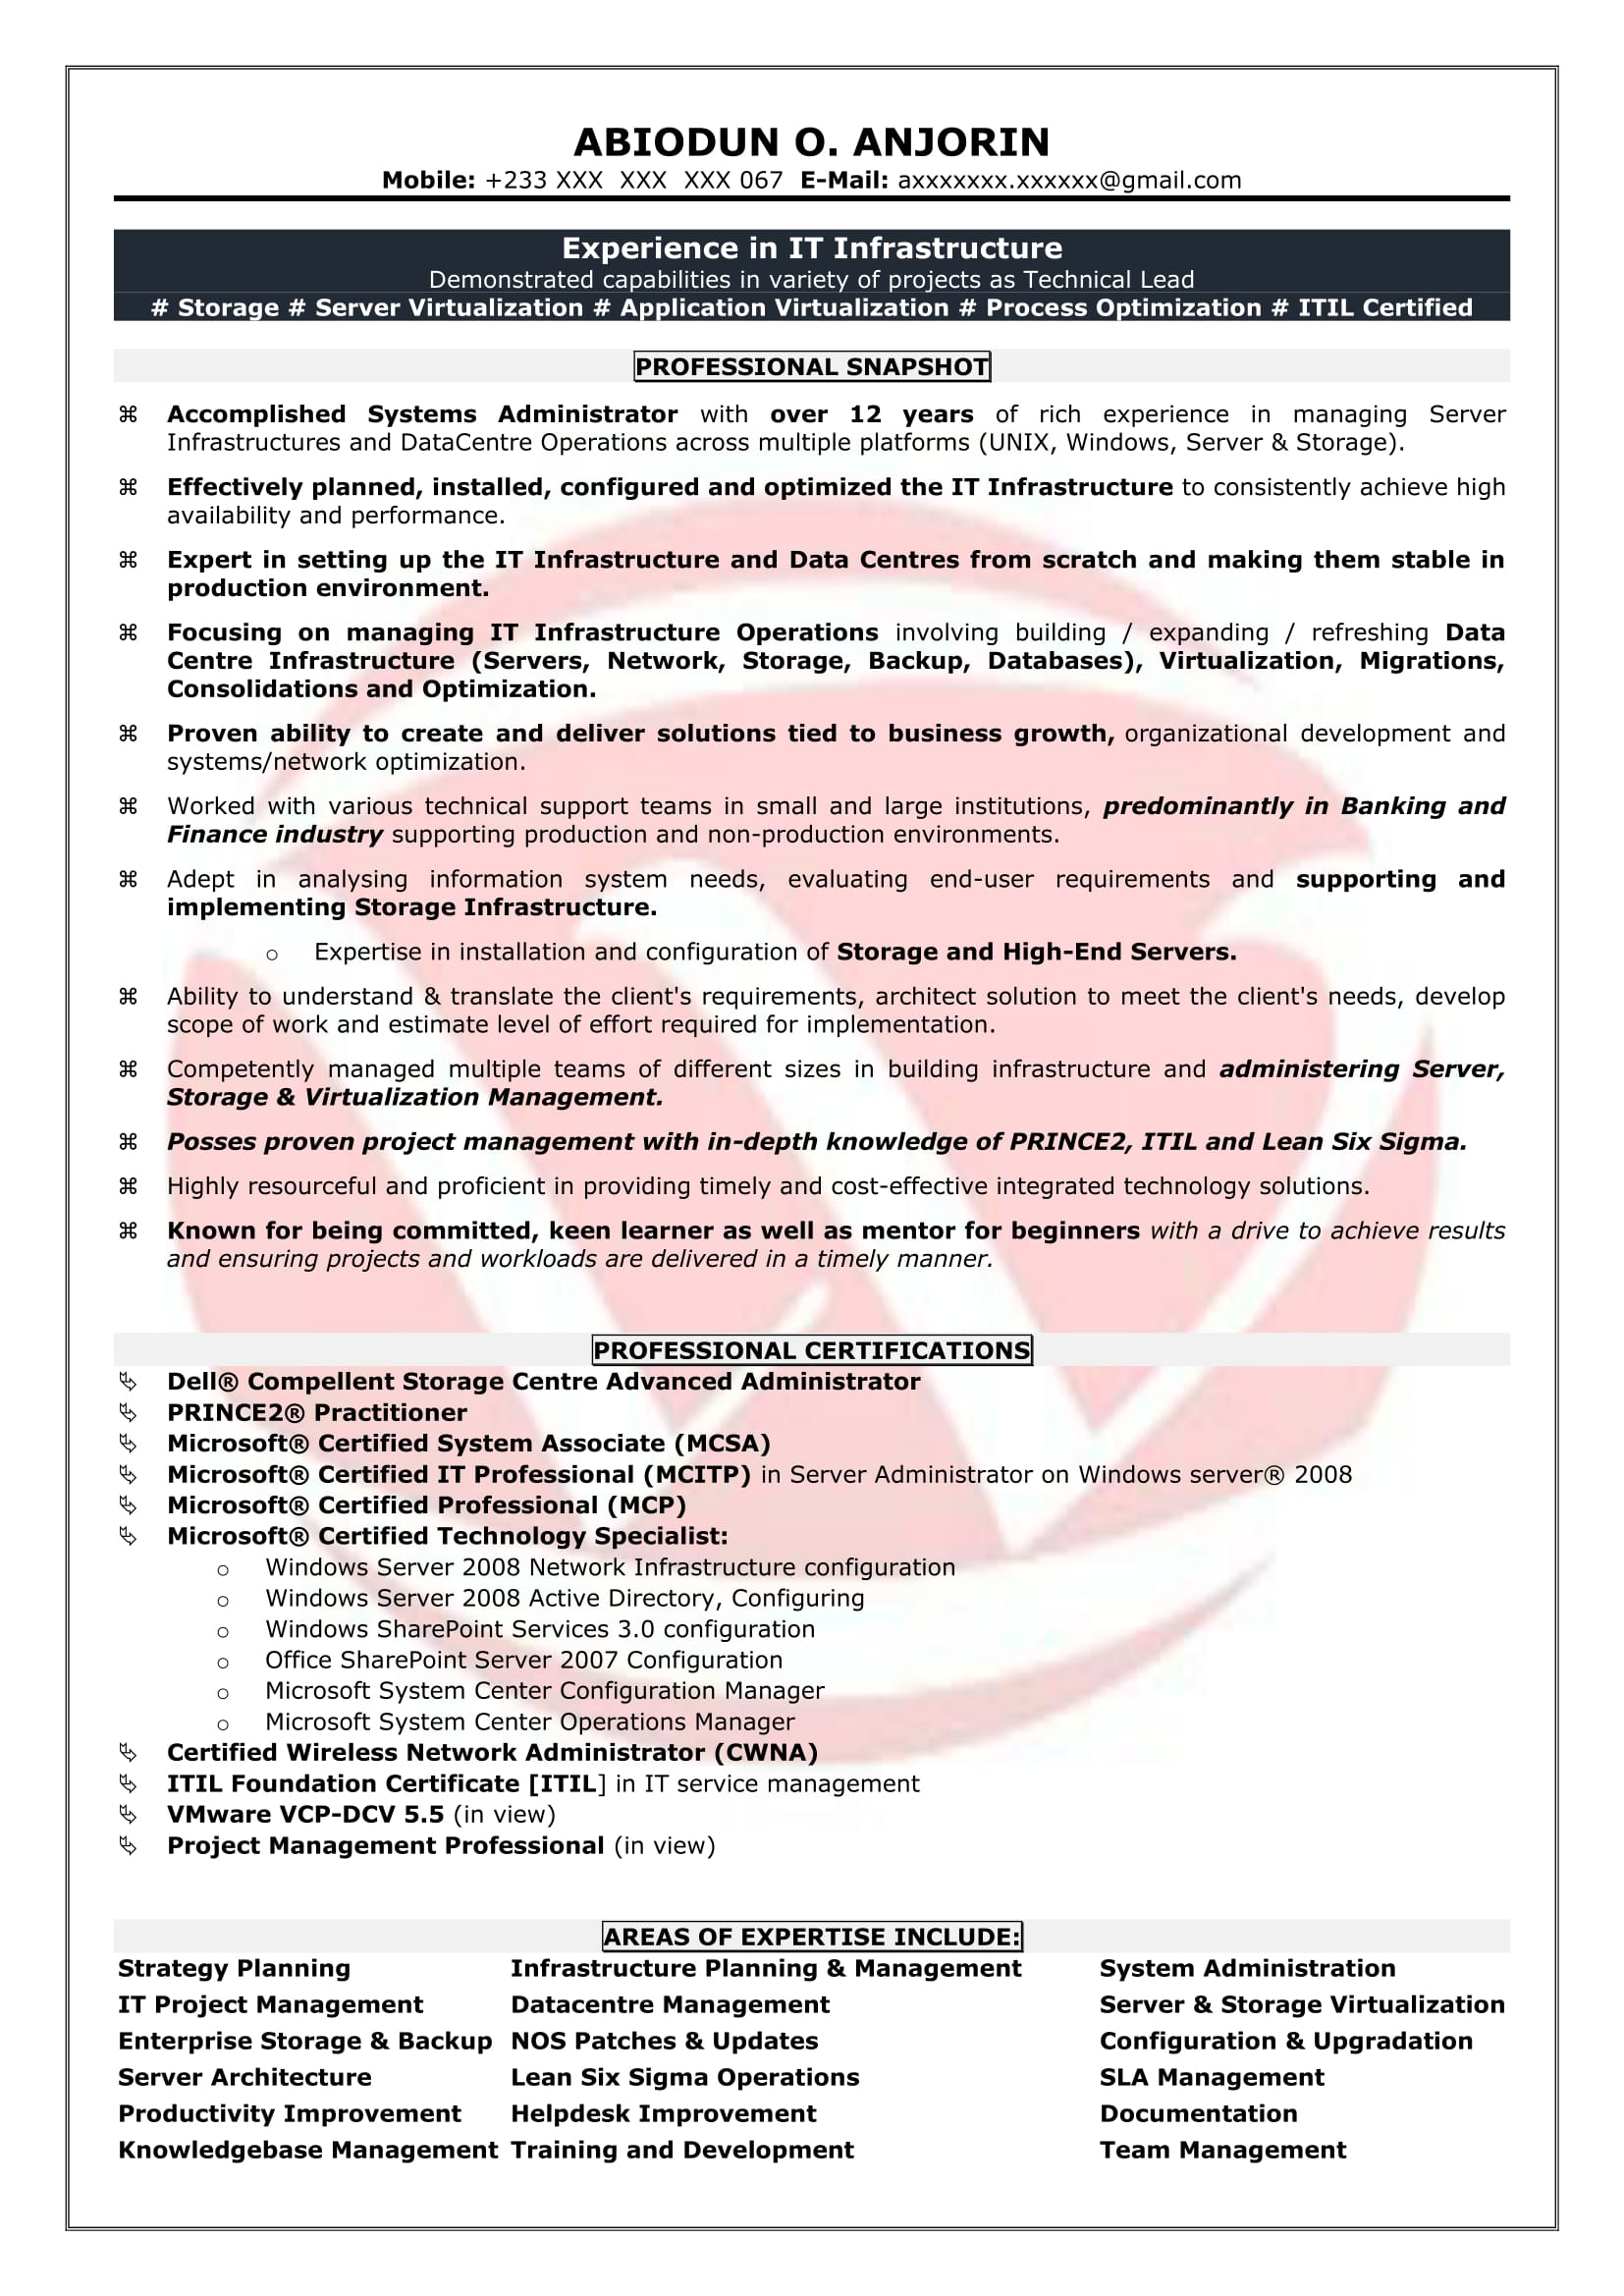 System Admin Resume Format System Administrator Sample Resumes Download Resume Format Templates